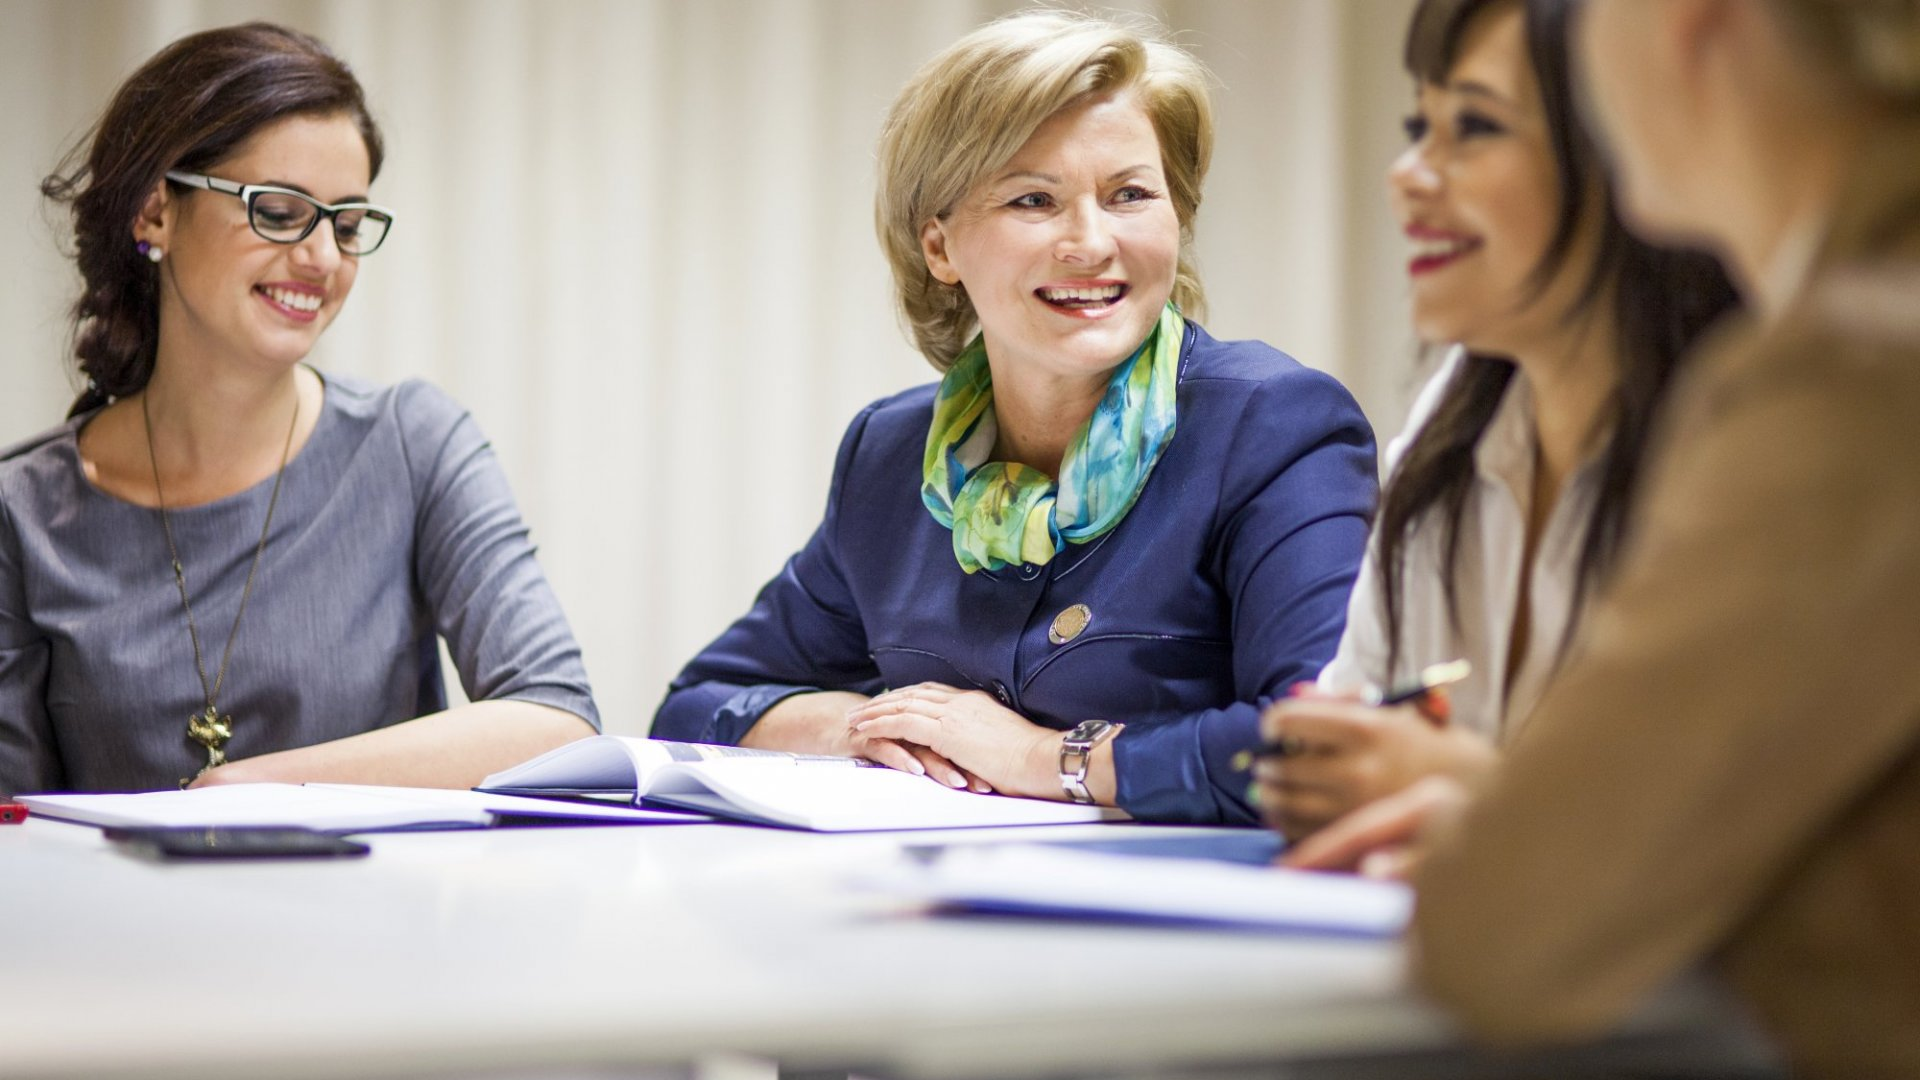 The Overlooked Key to Having a Great Mentor Relationship